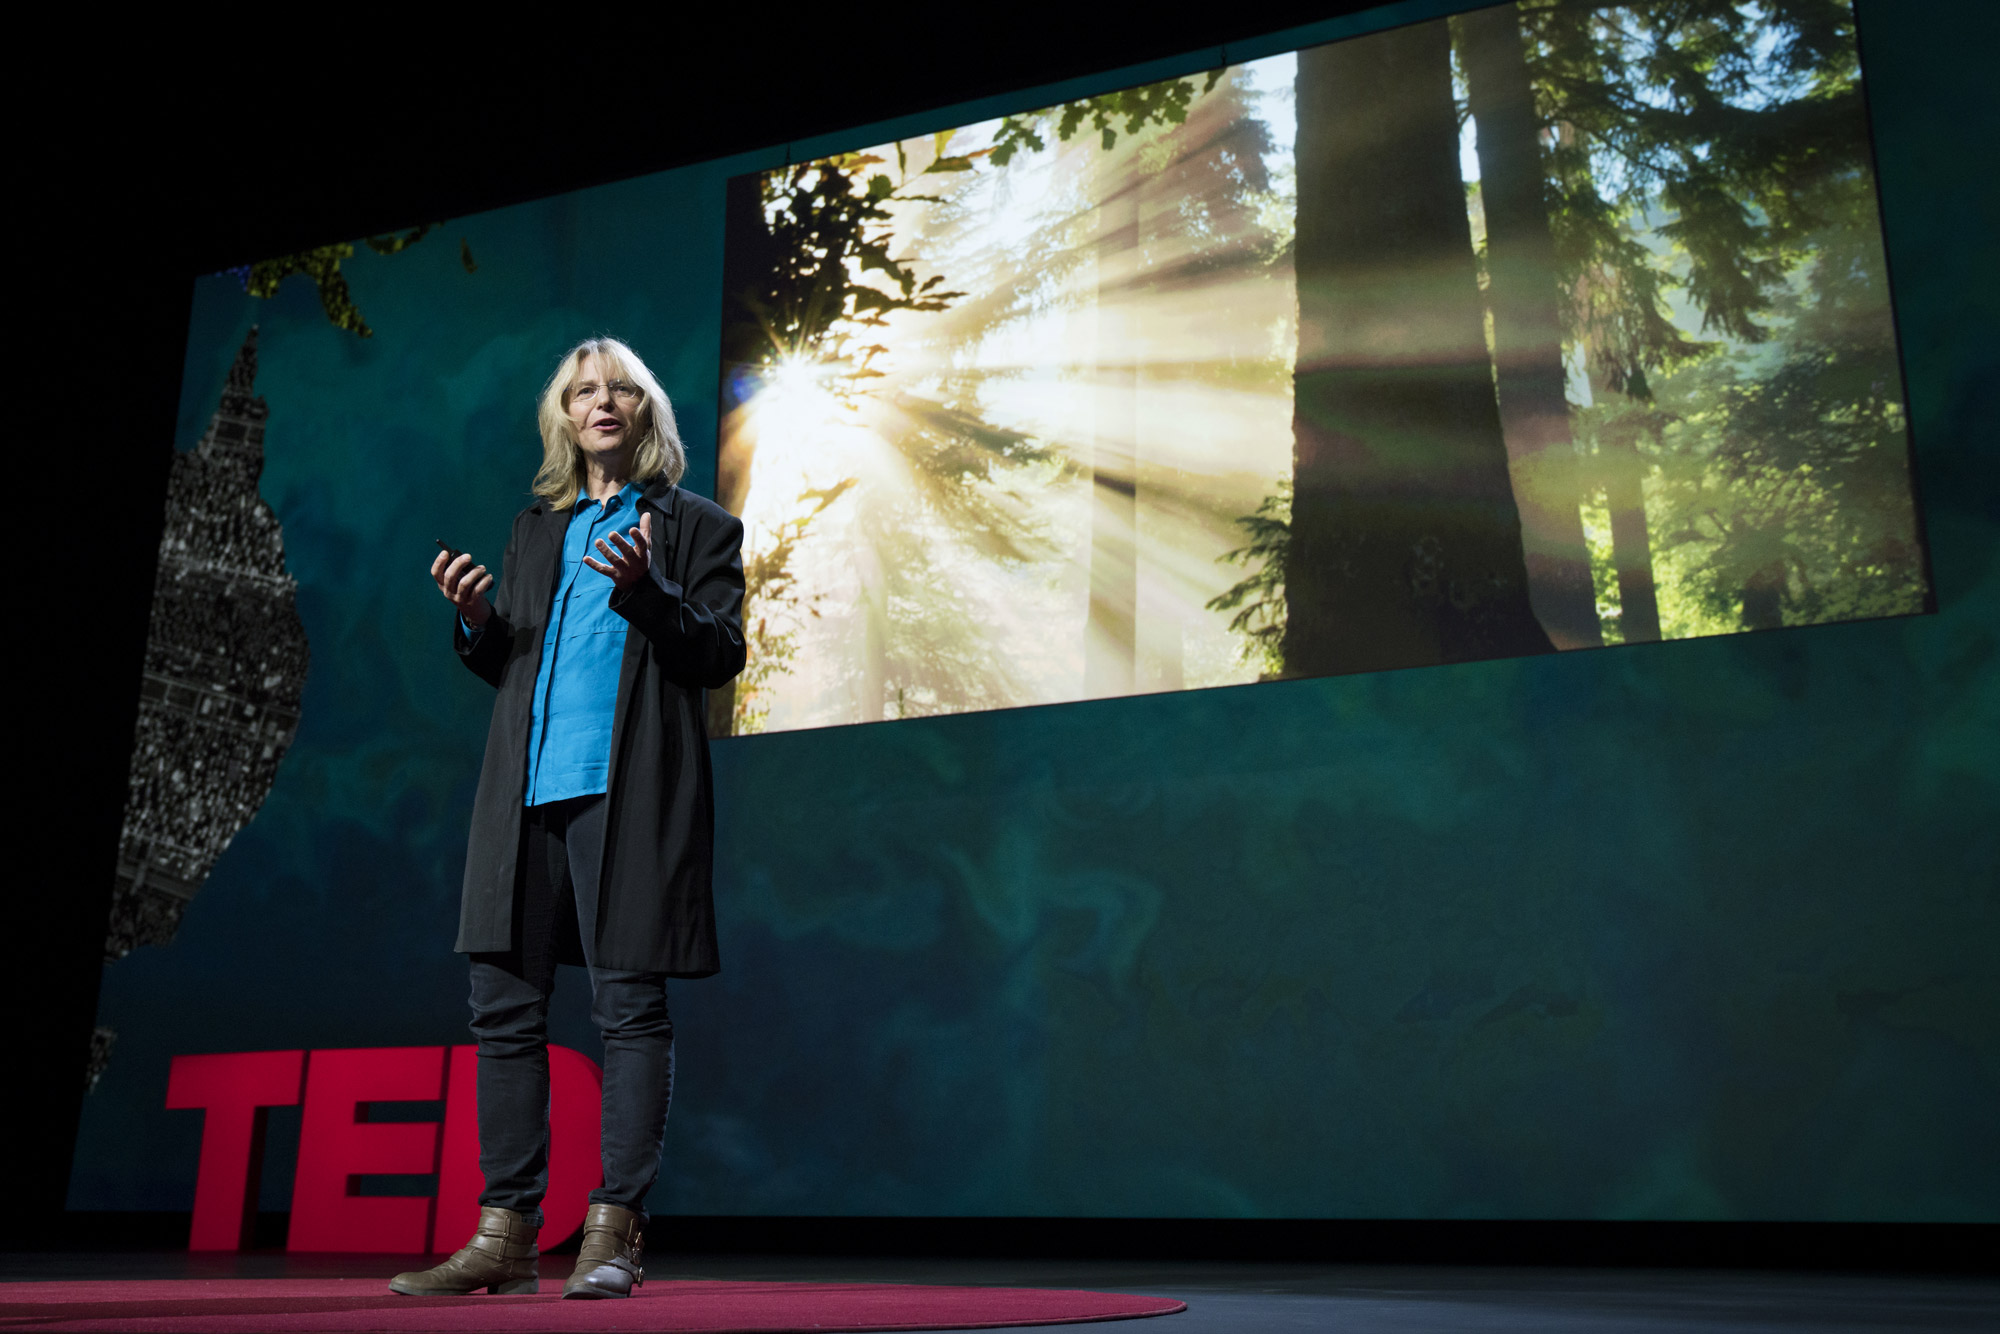 Forest for the trees: Suzanne Simard at TEDSummit | TED Blog